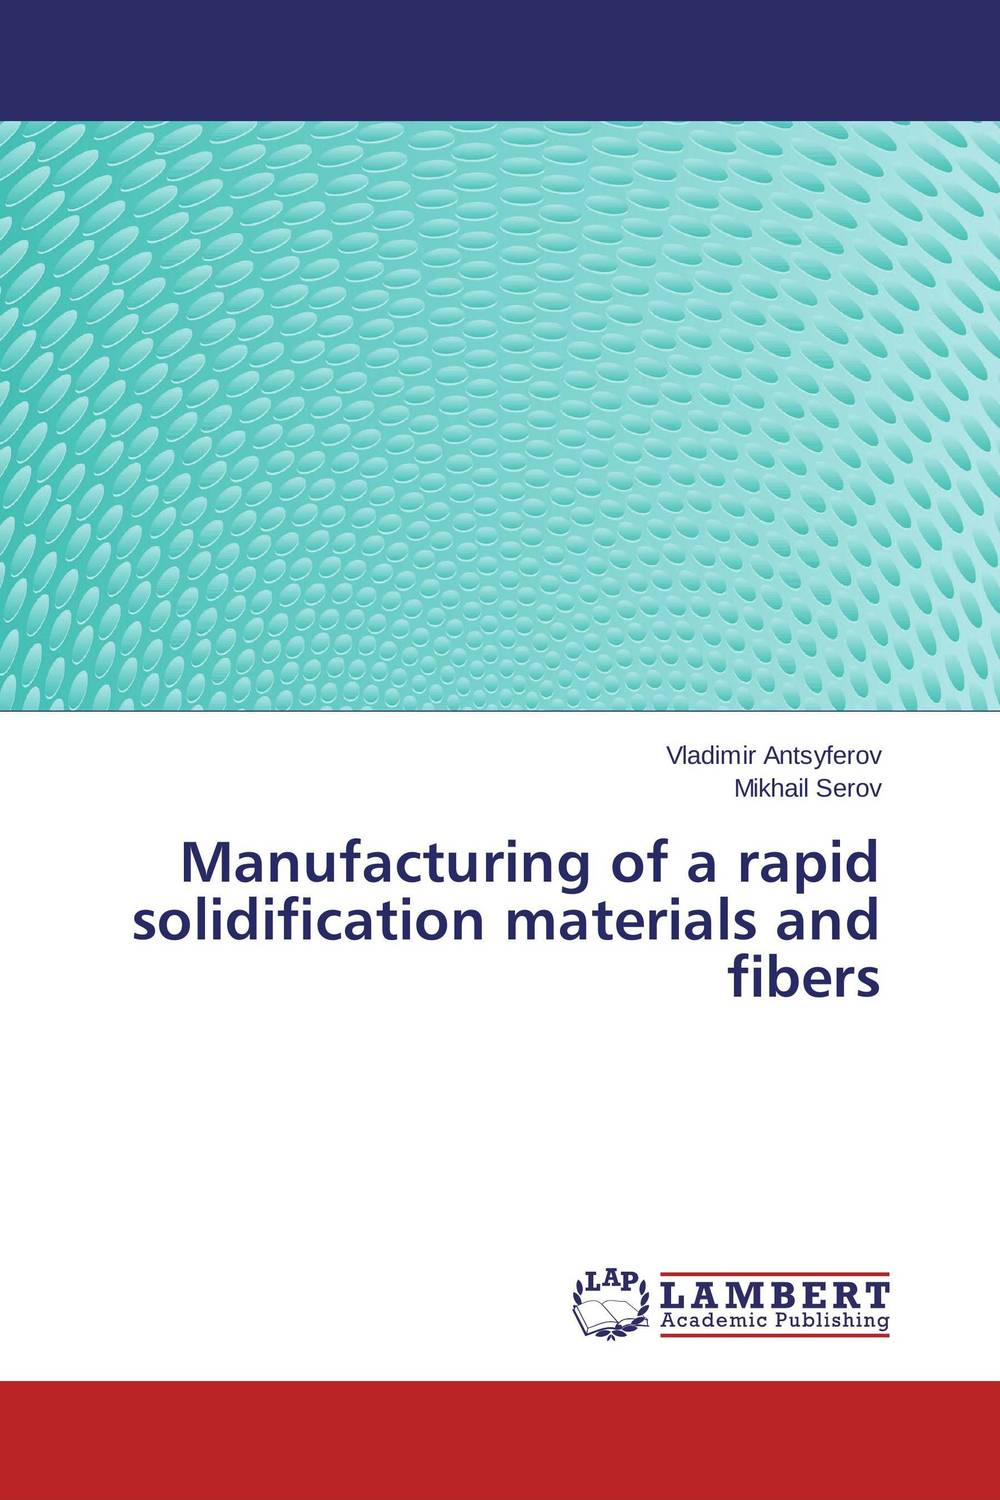 Manufacturing of a rapid solidification materials and fibers